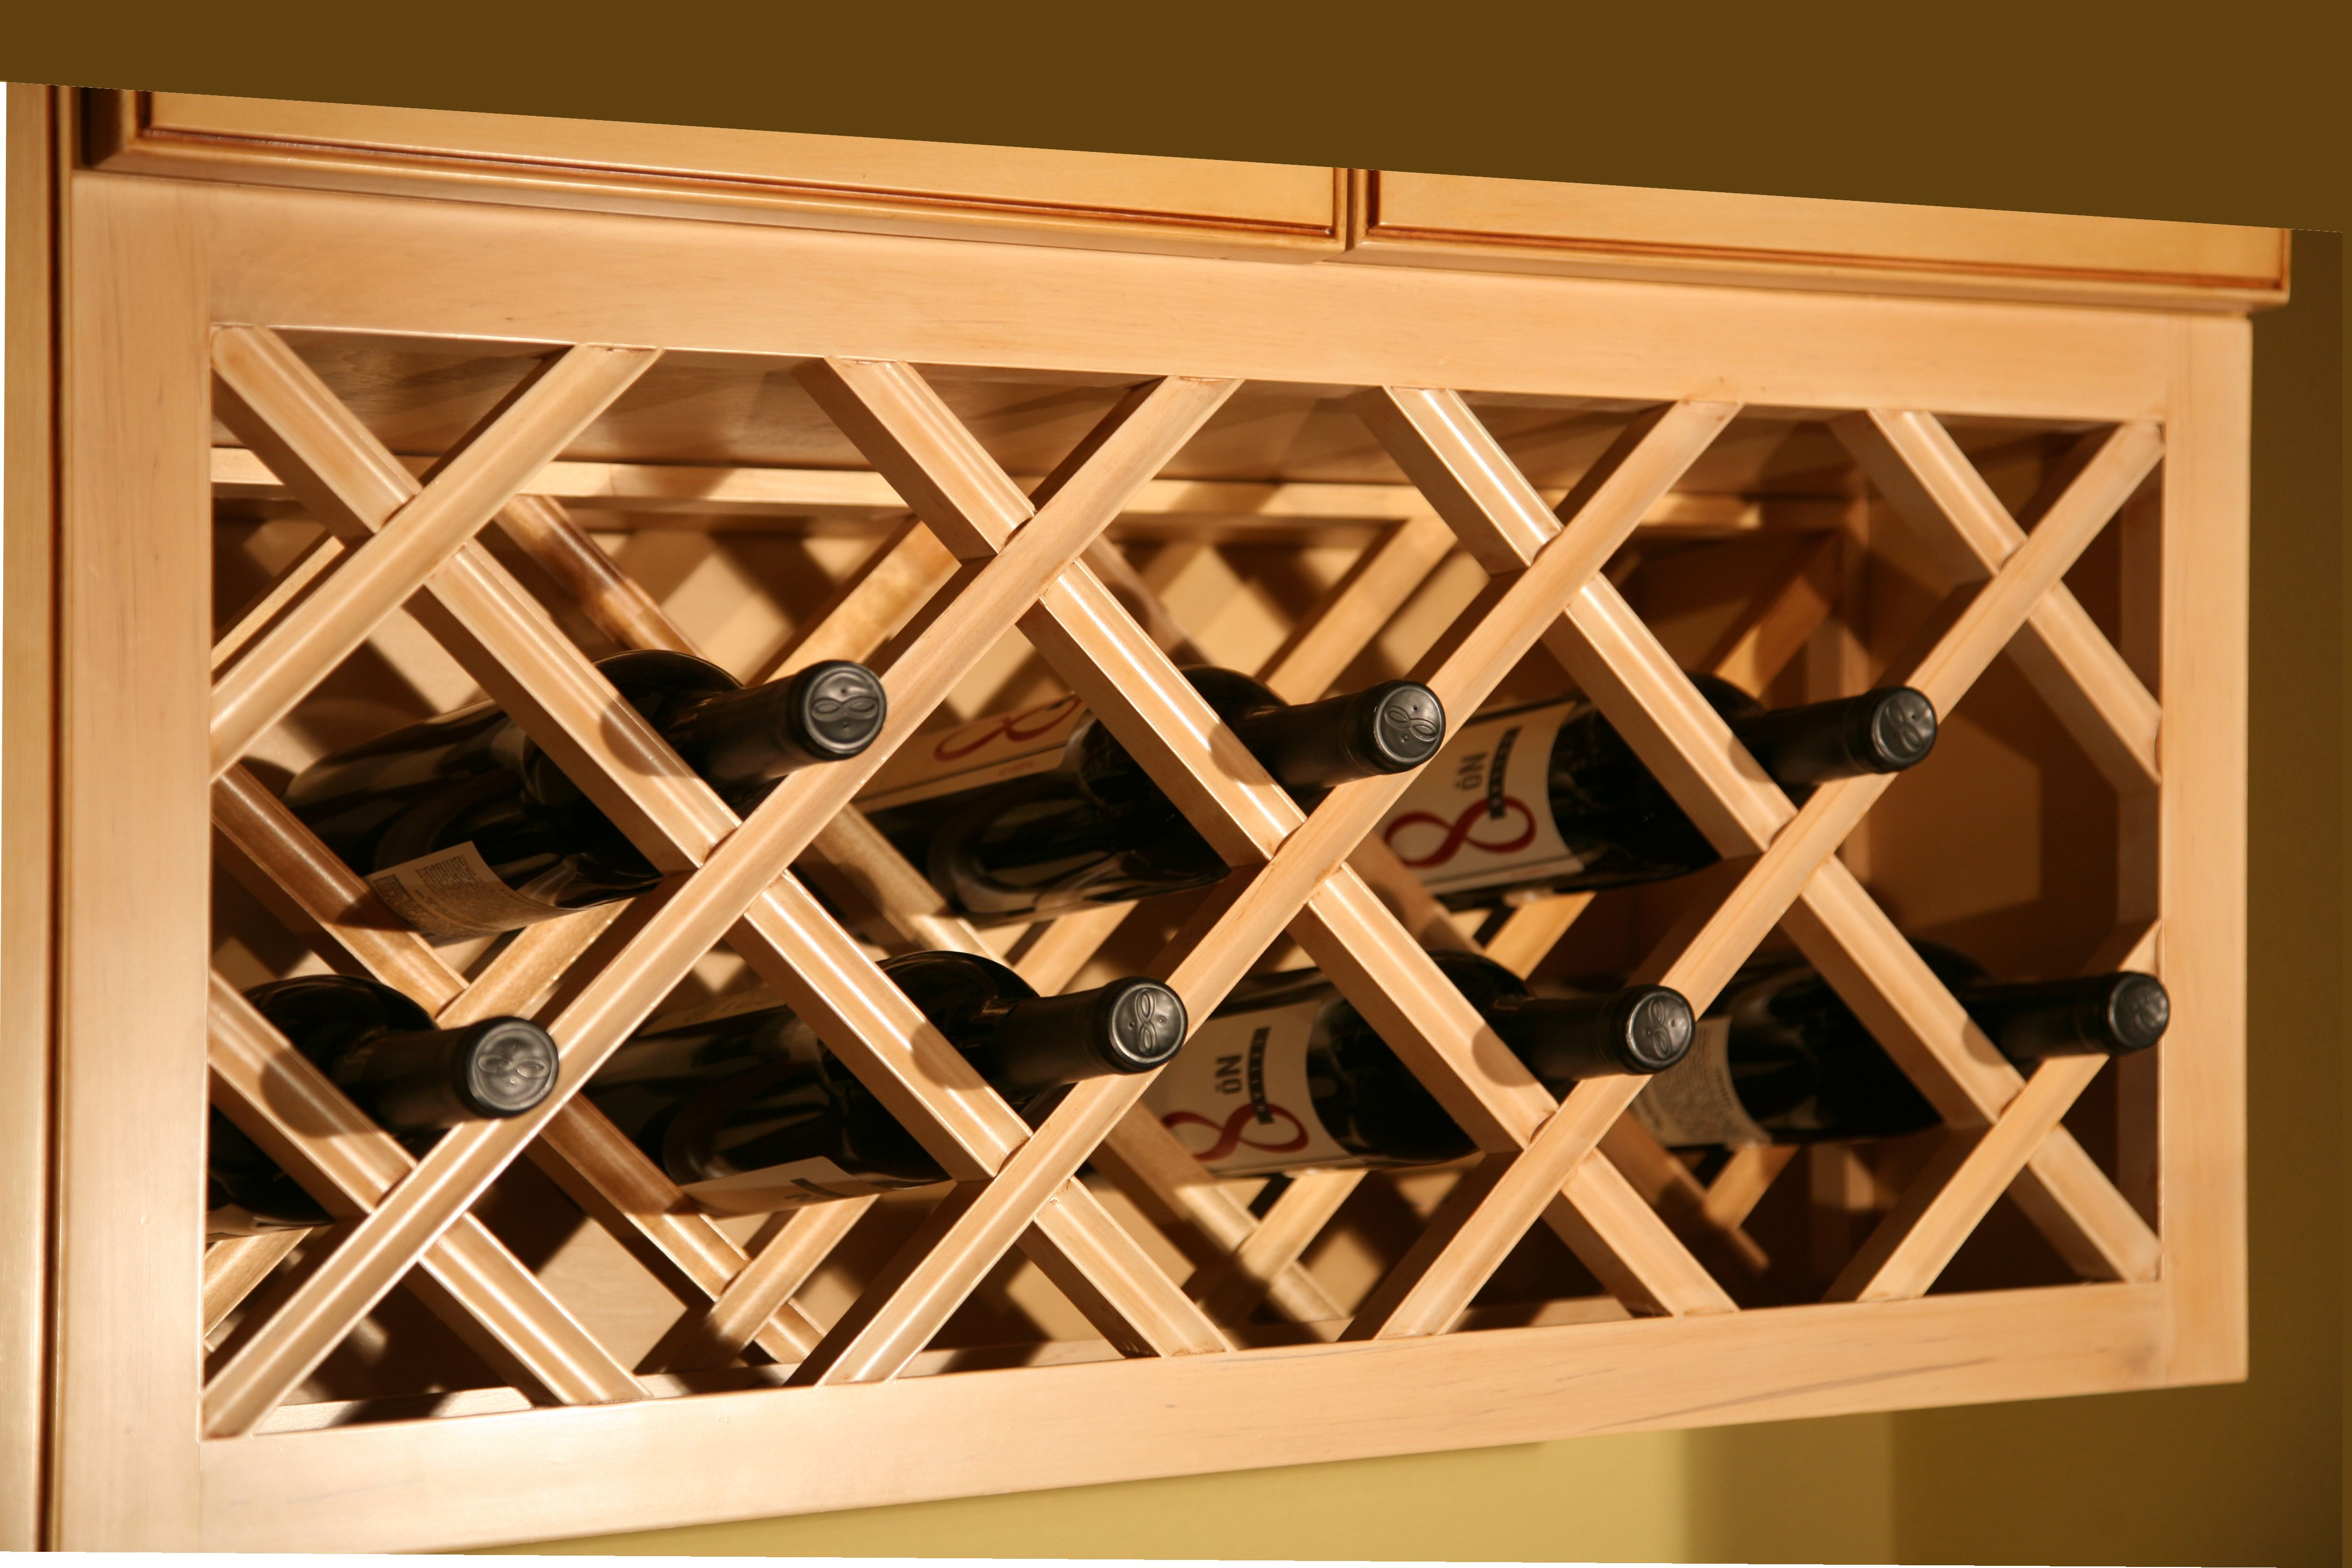 Uncategorized Wooden Wine Rack Cabinet wine rack cabinet insert hd image wallpaper projects to try homemade drinks also wooden racks and wood build a wall mounted which will hold